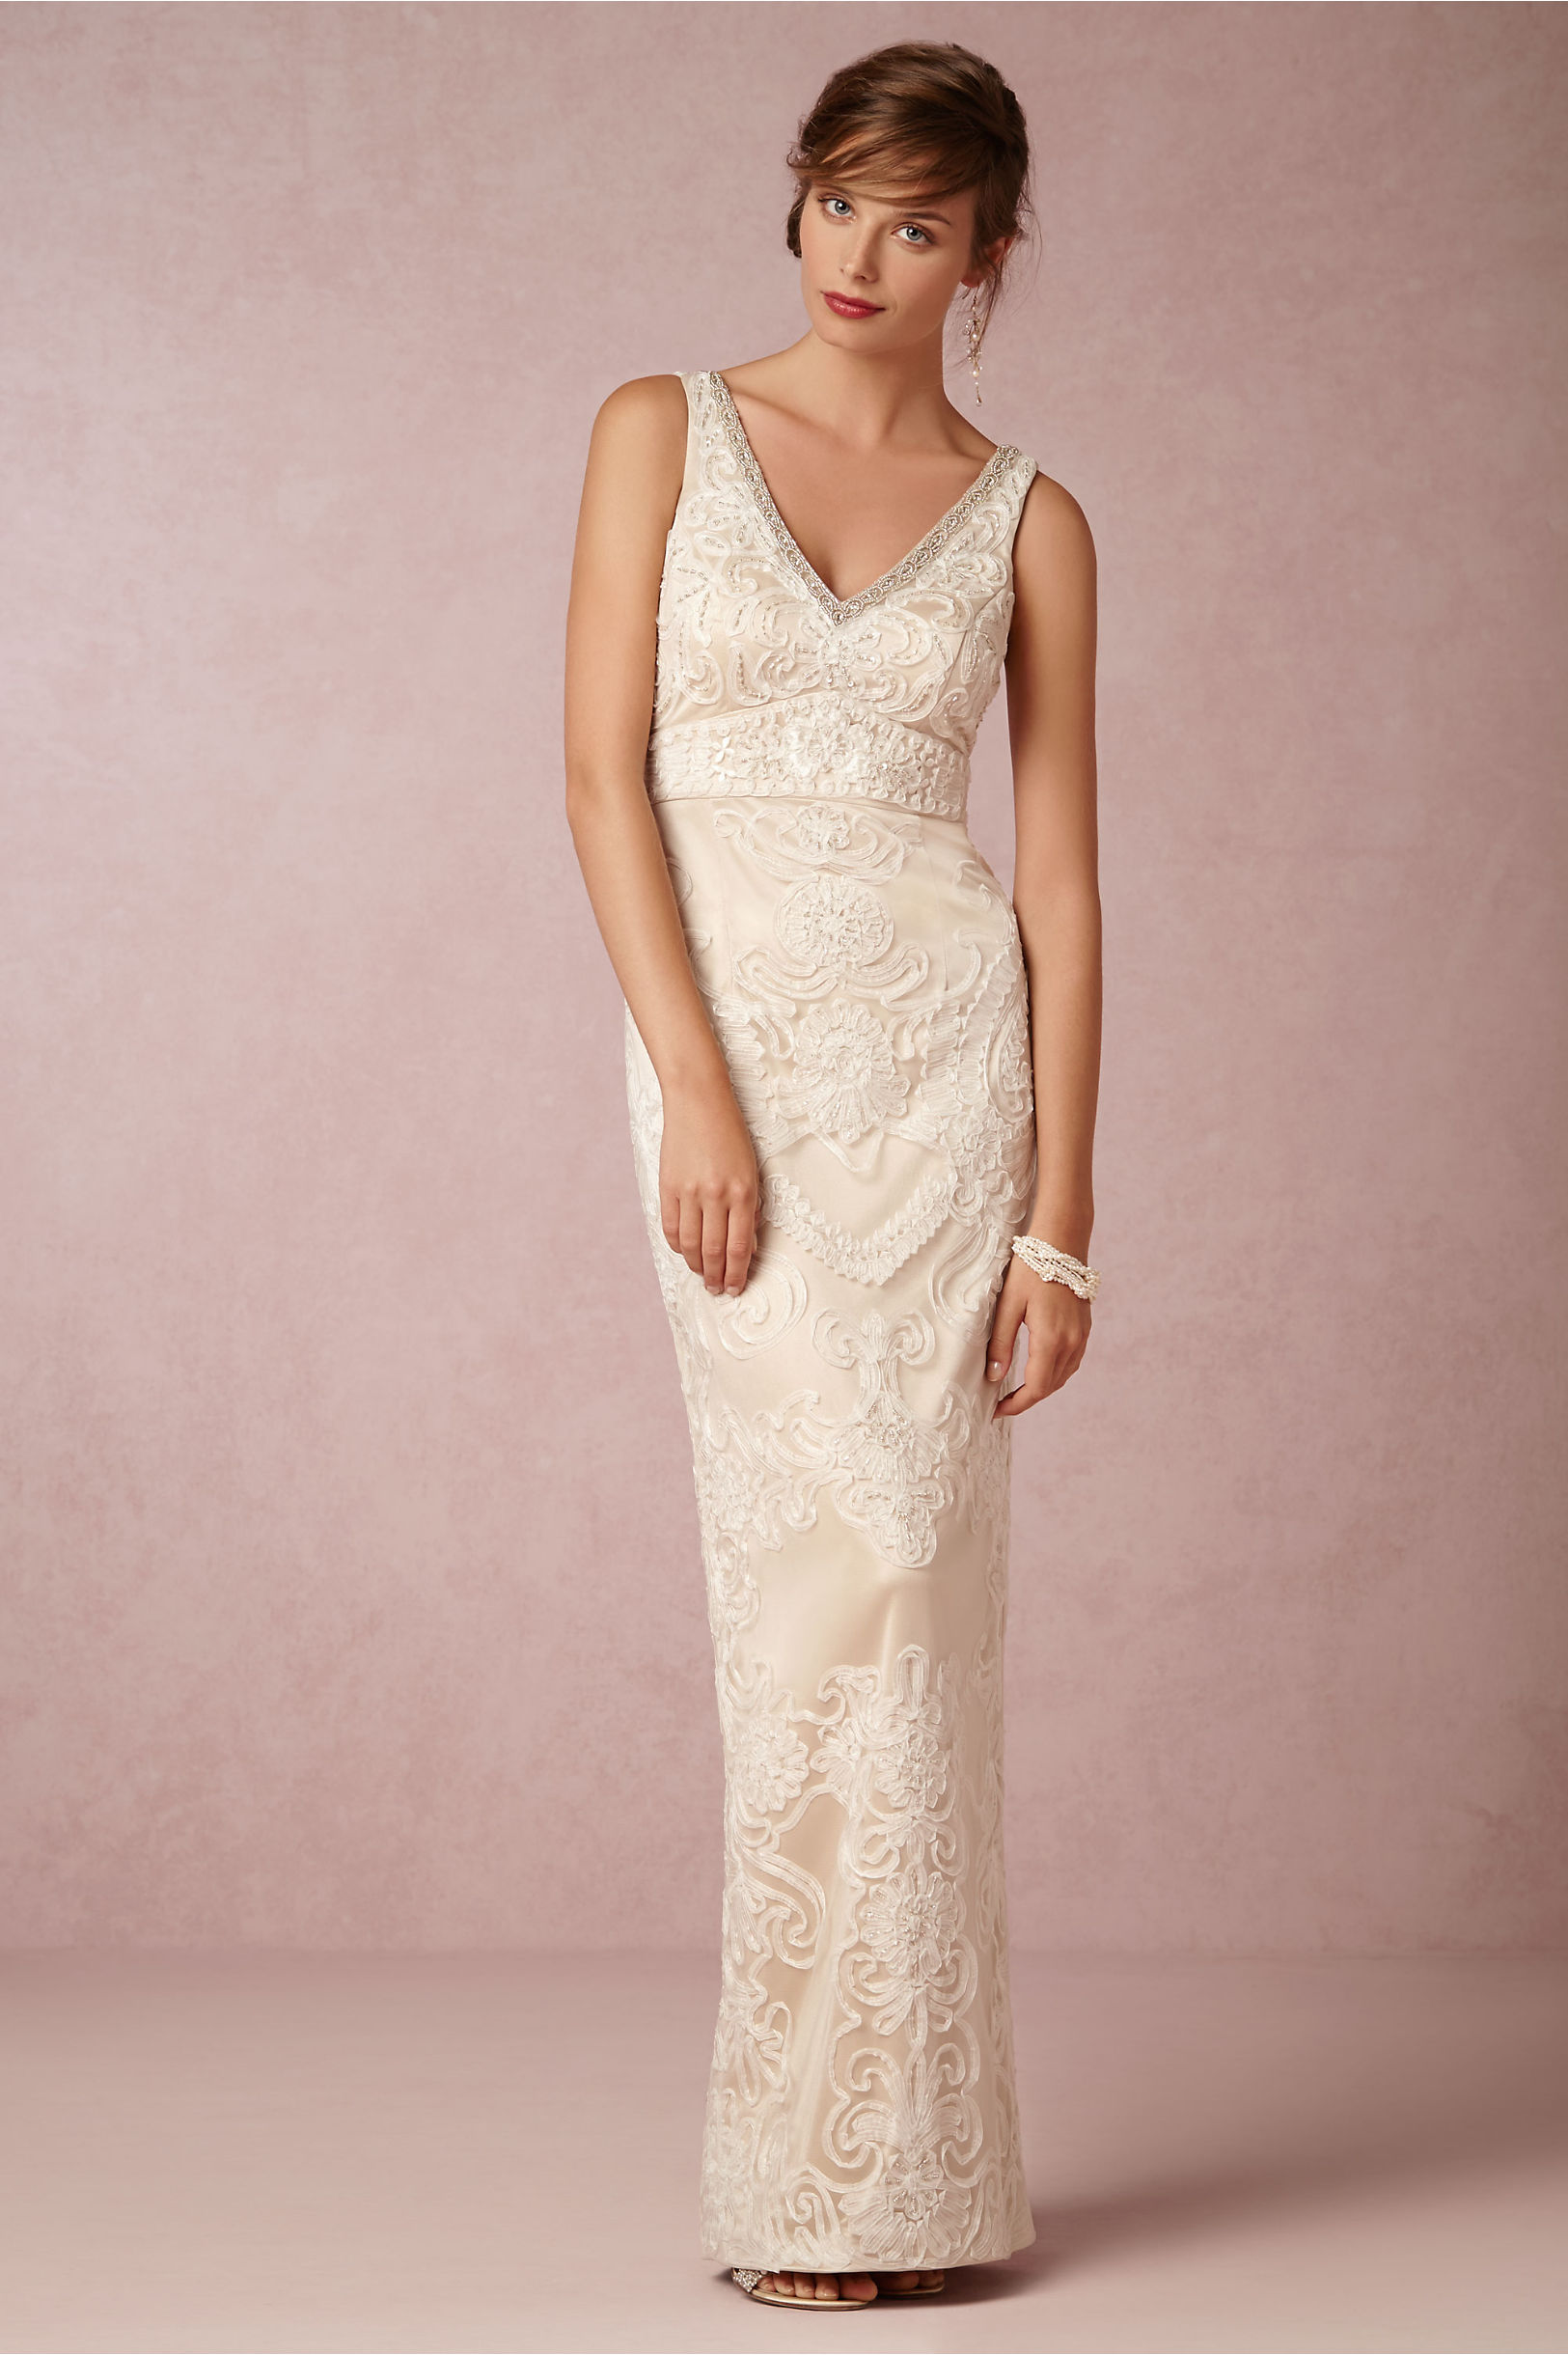 Adele gown in bride bhldn sue wong champagne adele gown bhldn junglespirit Gallery